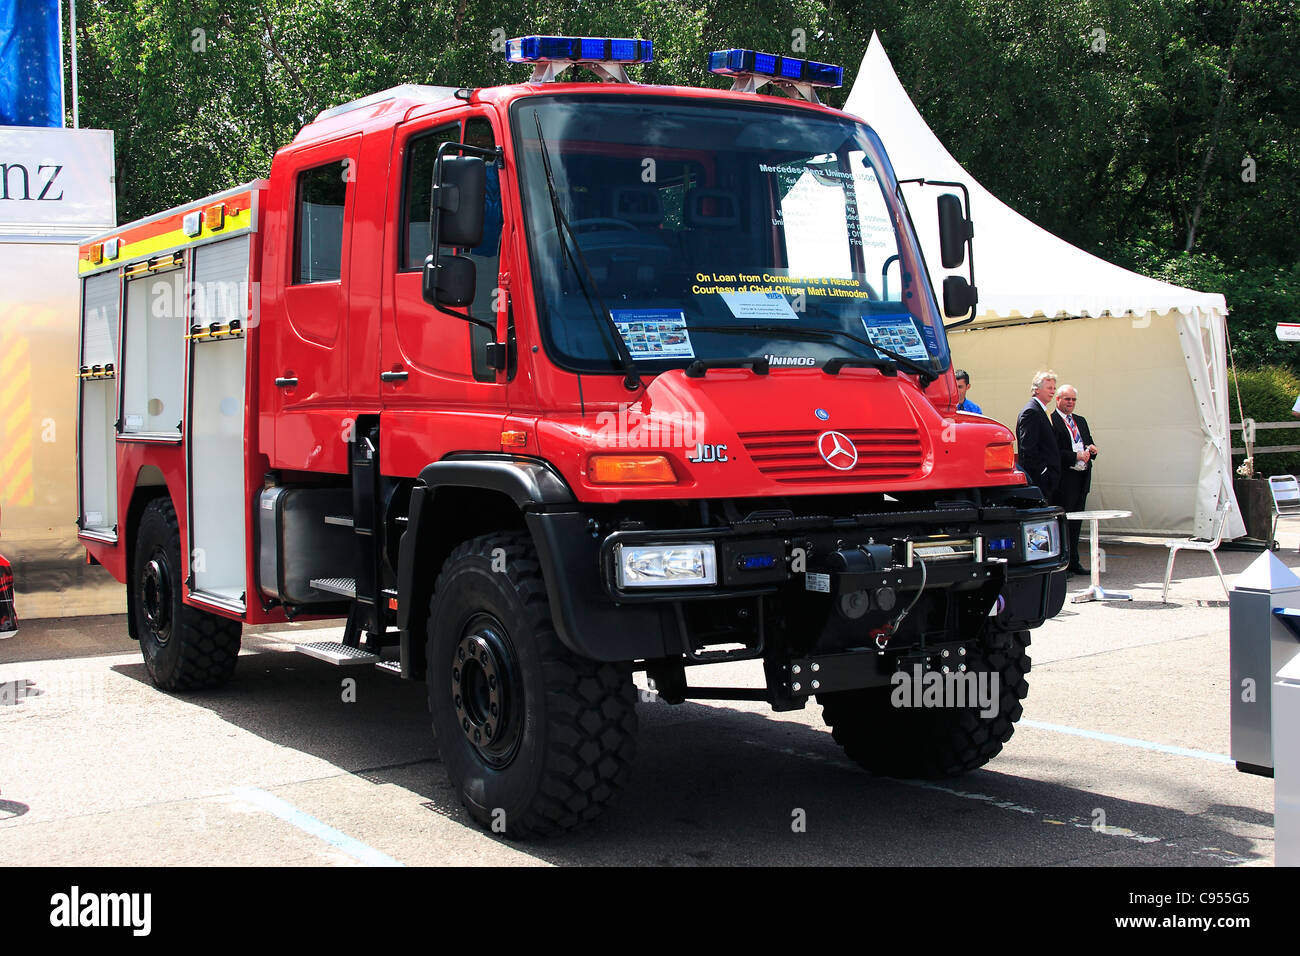 Unimog Stock Photos & Unimog Stock Images - Page 2 - Alamy